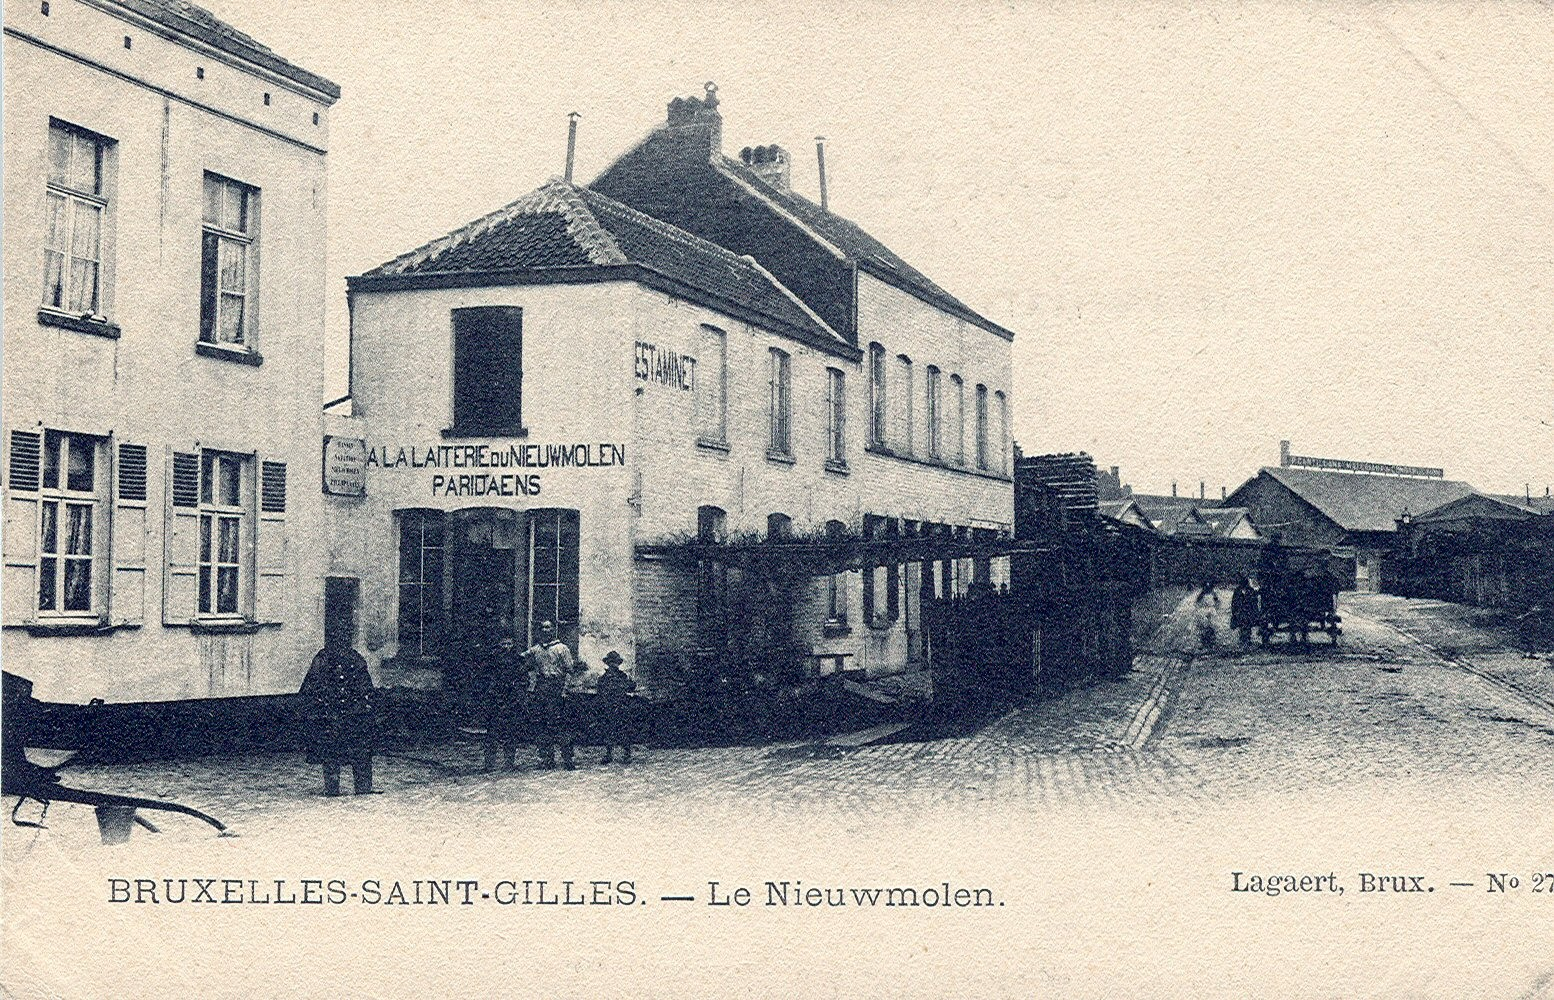 Le Nieuwmolen (Collection de Dexia Banque, s.d.).